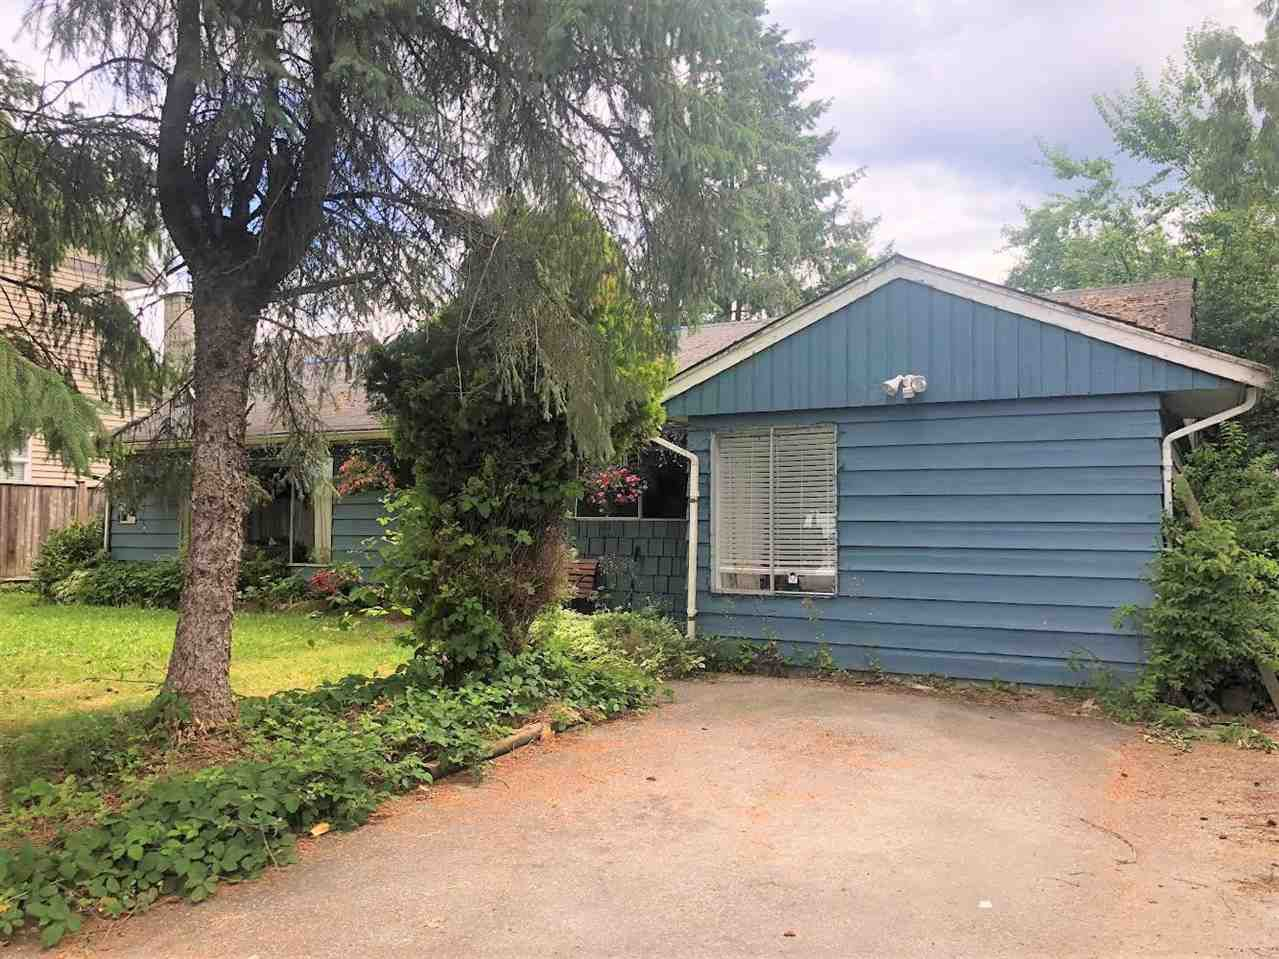 Main Photo: 11956 236 Street in Maple Ridge: Cottonwood MR House for sale : MLS®# R2287374